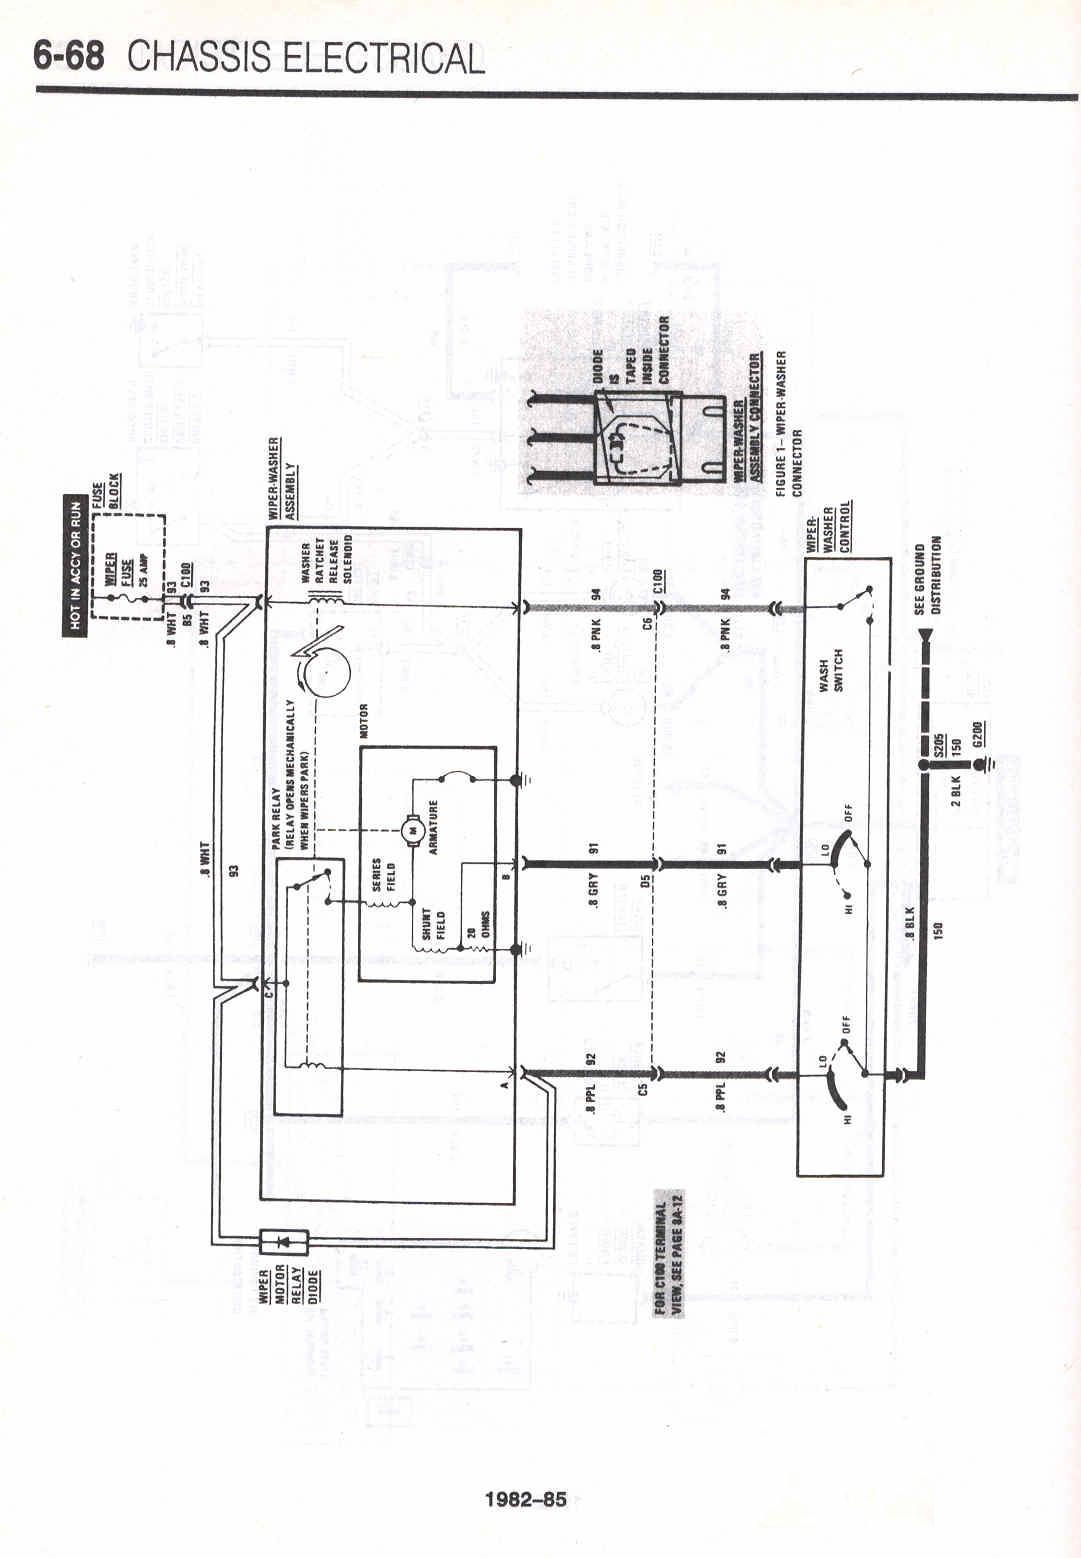 Automatic Choke Wiring Diagram Trusted Electric Oil Gauge Wire Diagrams 84 Caprice Electrical Work Pressure